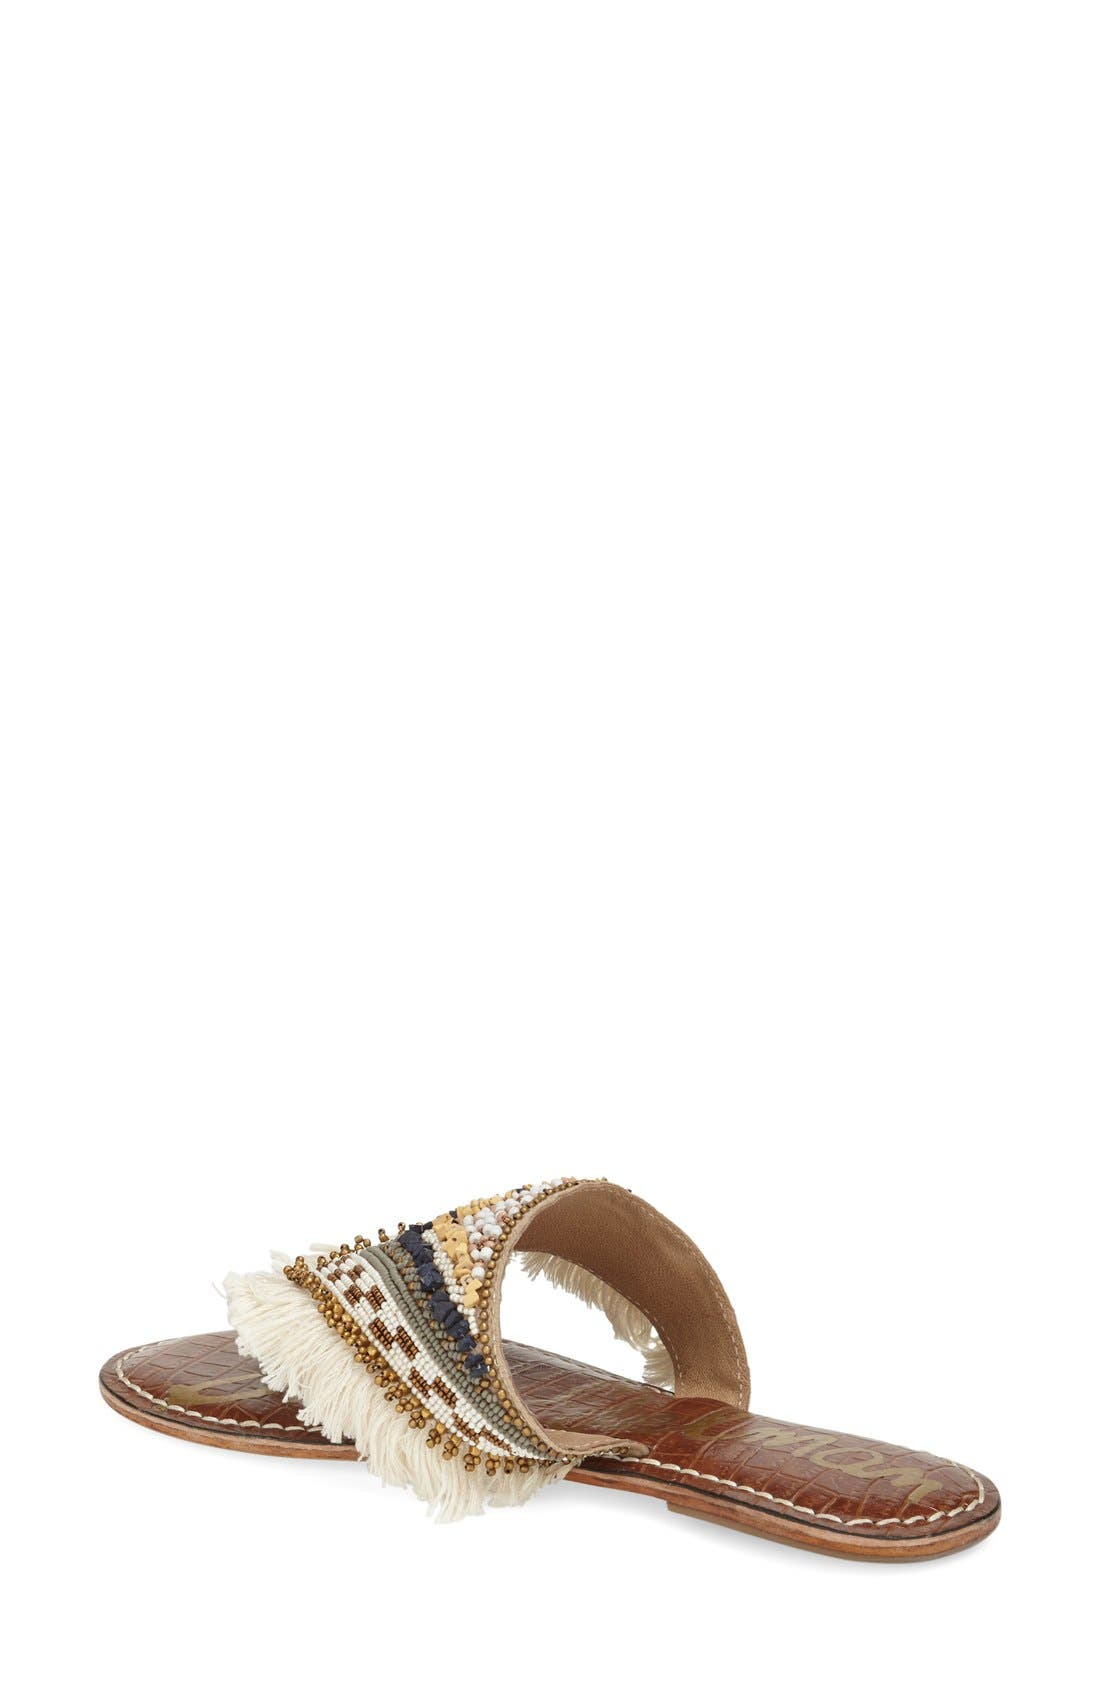 Alternate Image 2  - Sam Edelman 'Kennedy' Beaded Sandal (Women)